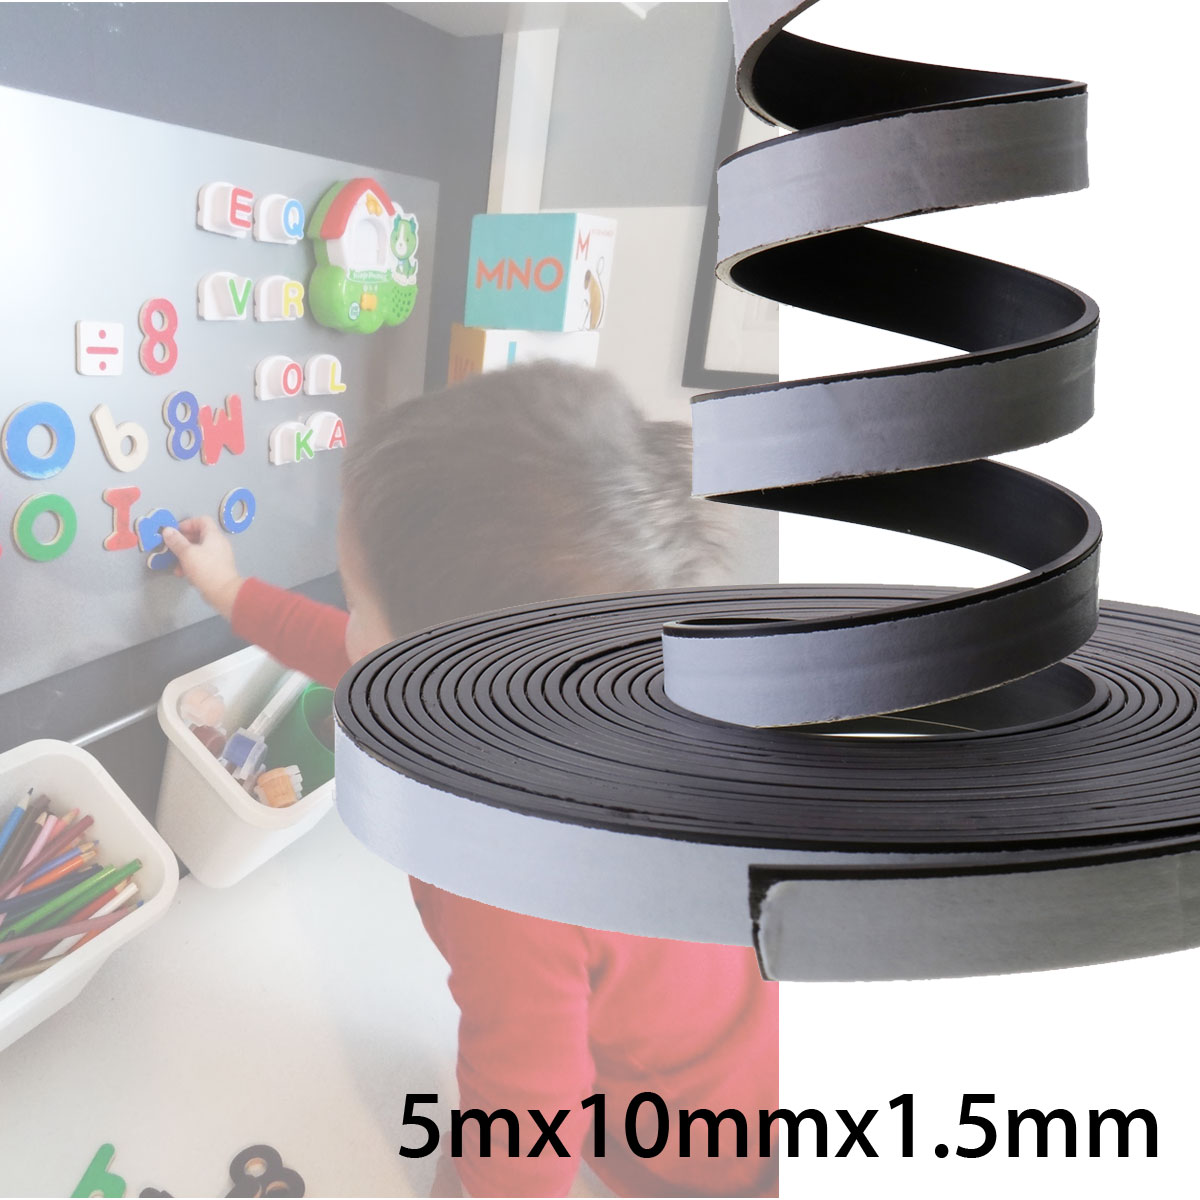 5M Self Adhesive Flexible Soft Rubber Magnetic Tape Magnet DIY Craft Strip Rolls free shipping flexible magnetic strip rubber magnet width 1pcs 297x210x1mm wothout adhesive